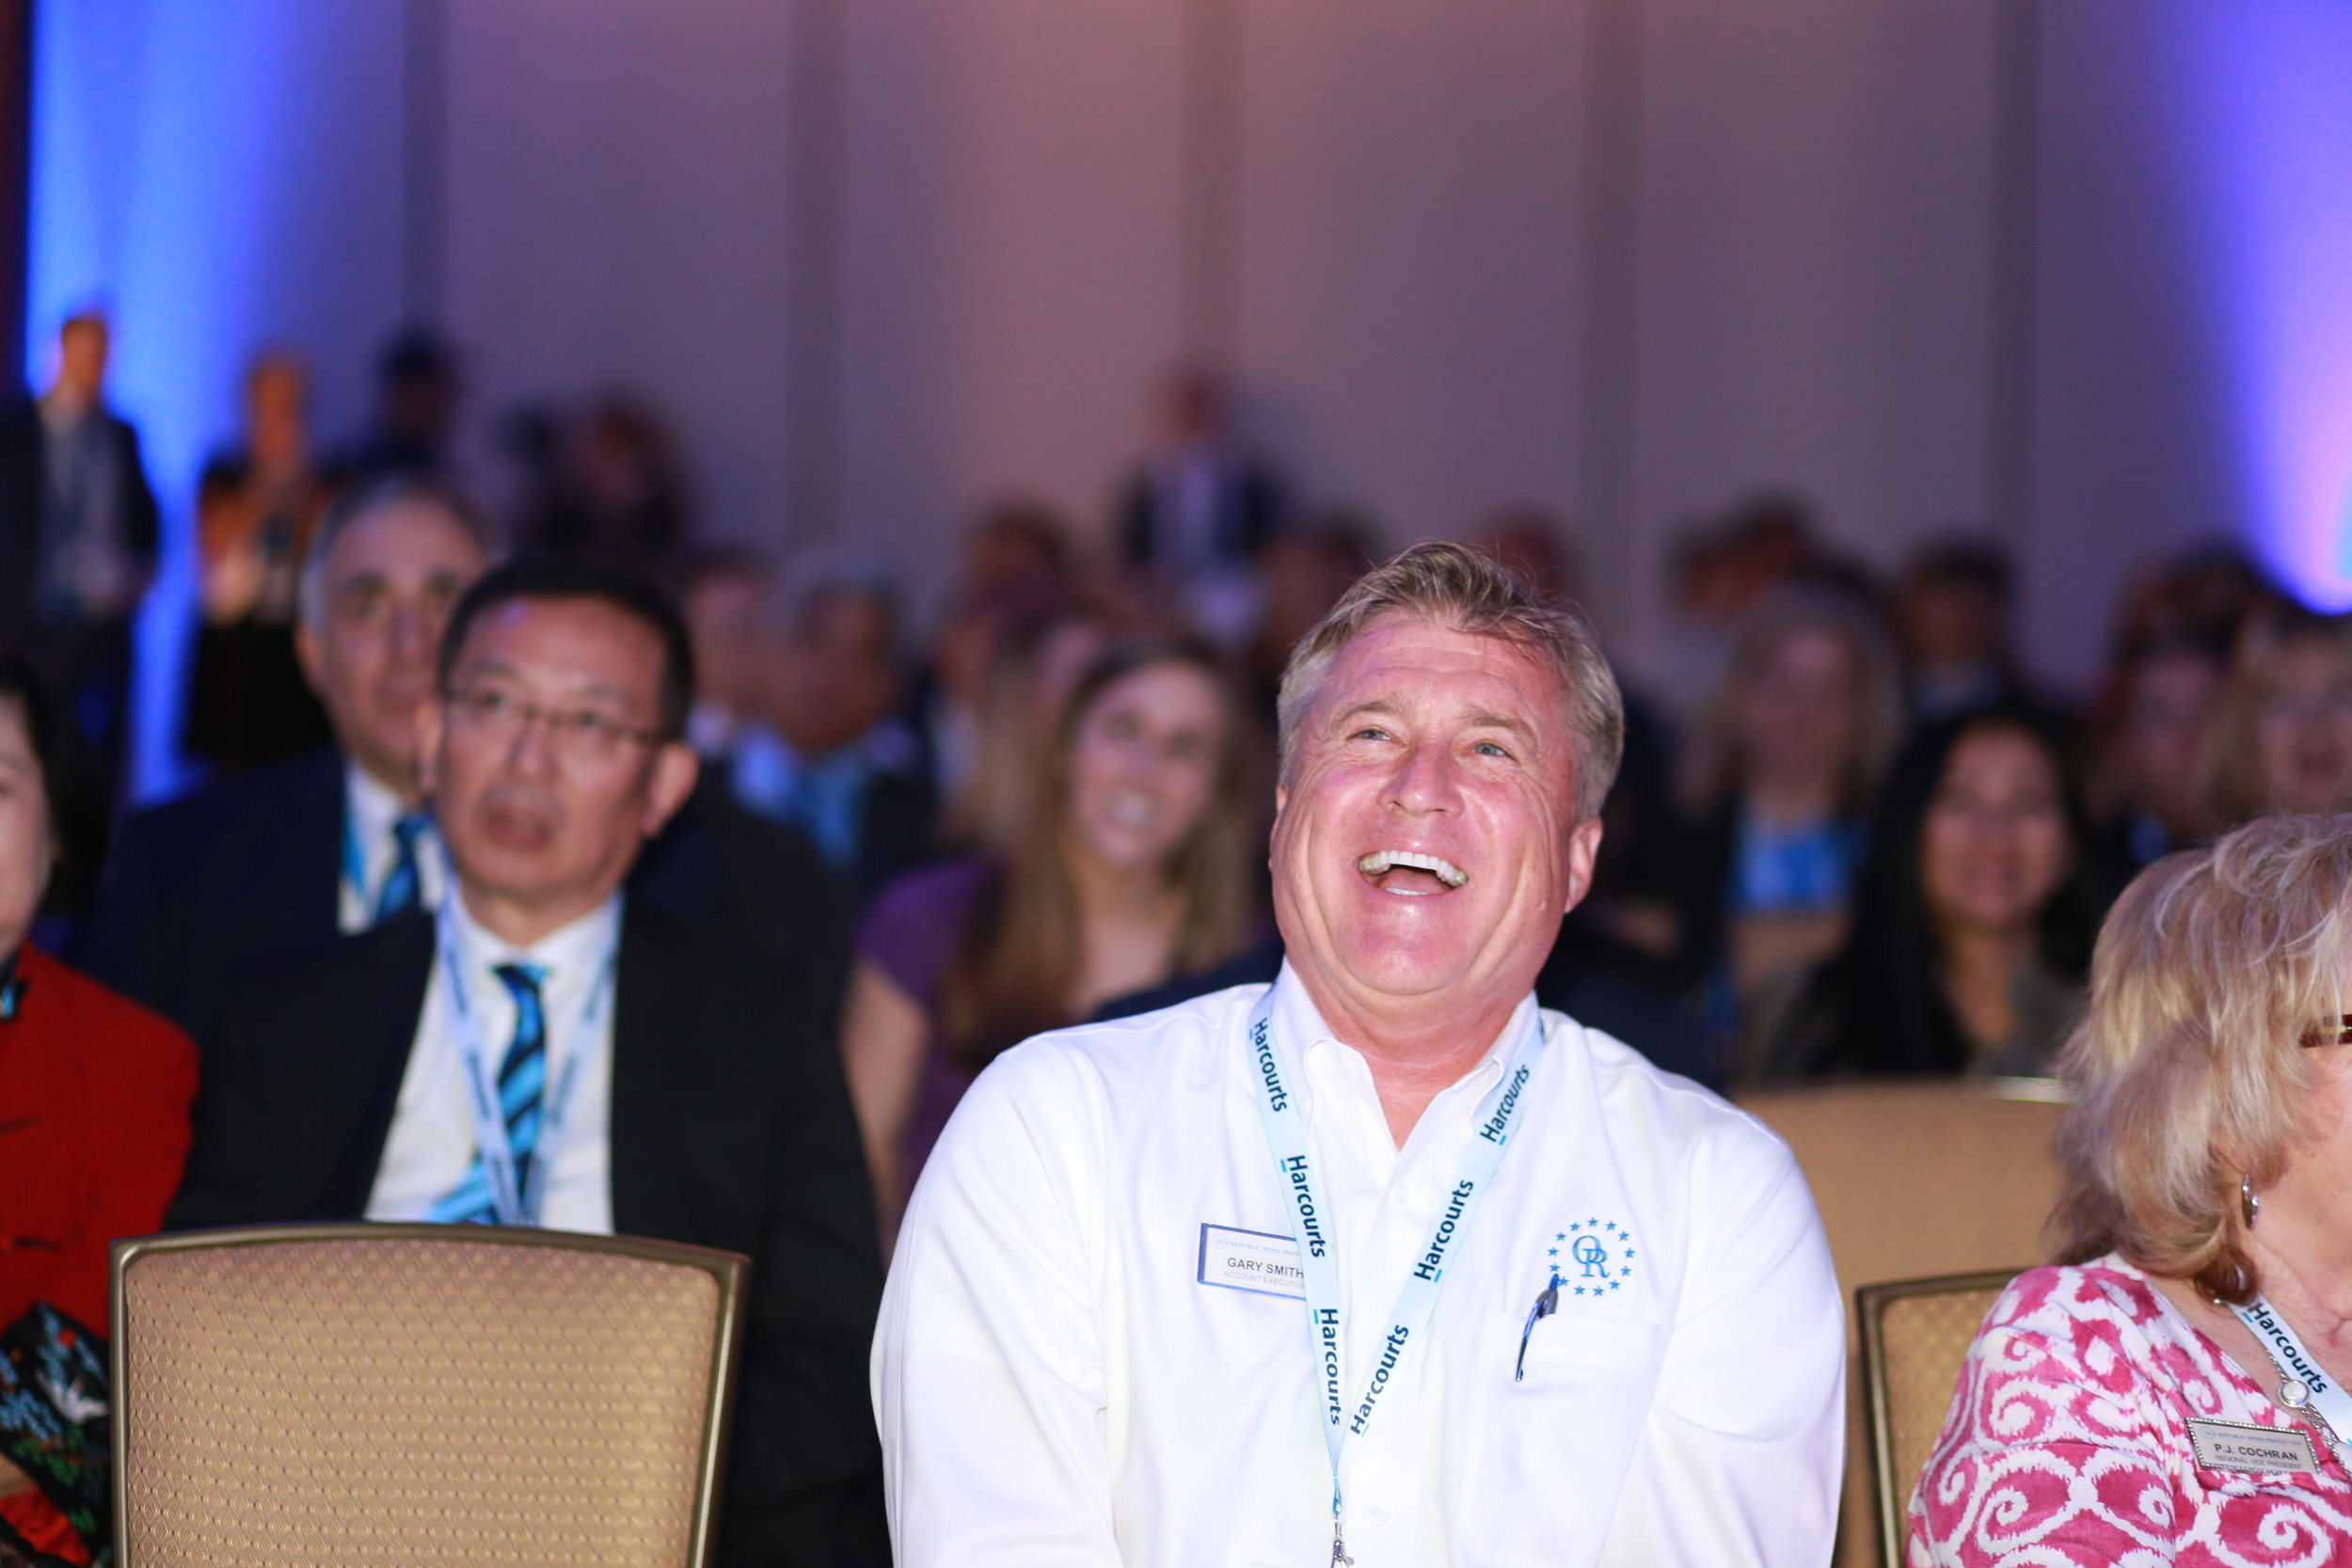 2019-03-26 Harcourts Conference - Day 2 1415.JPG